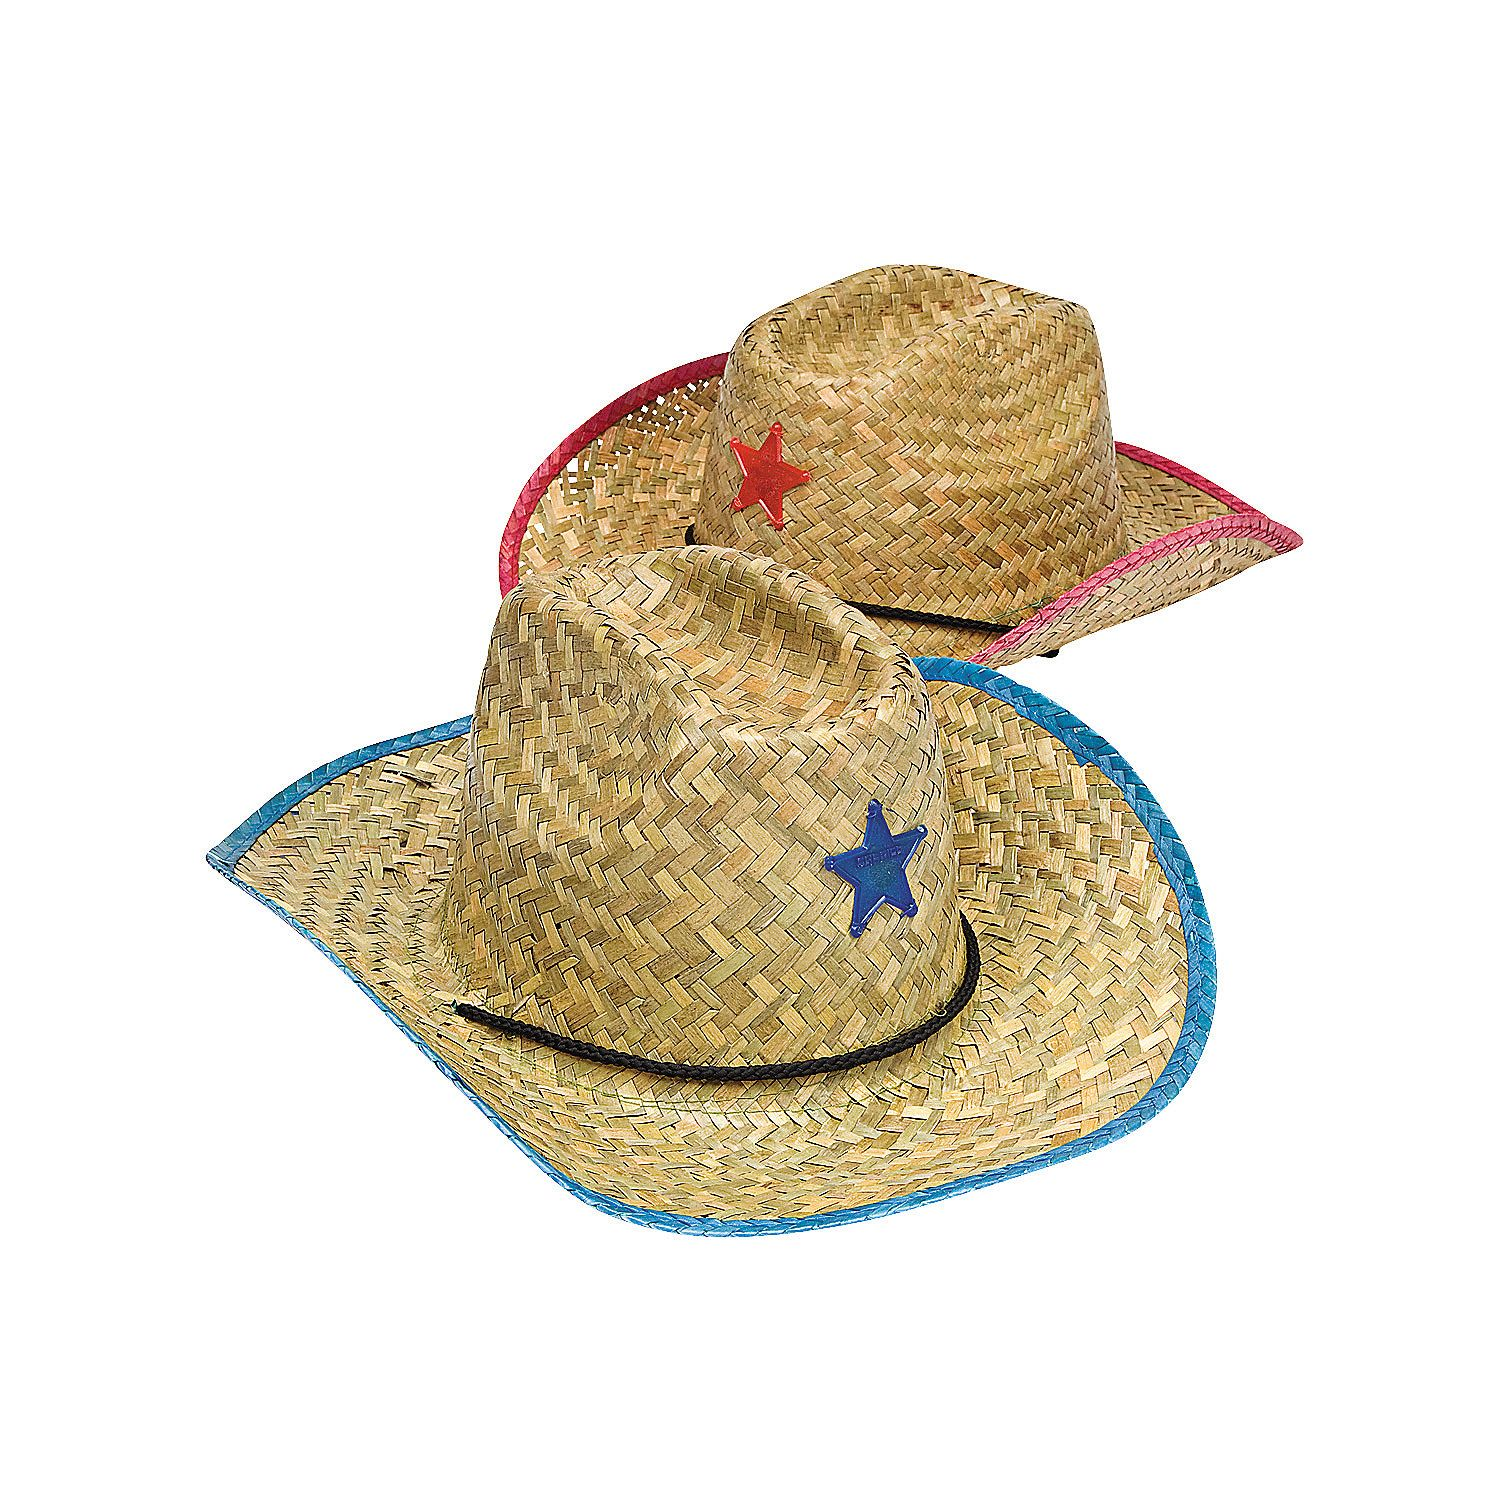 867ac93c468a3 Adult Cowboy Hats with Stars +OrientalTrading.com THINK I SEEN THESE AT  DOLLARTREE 12  12!!